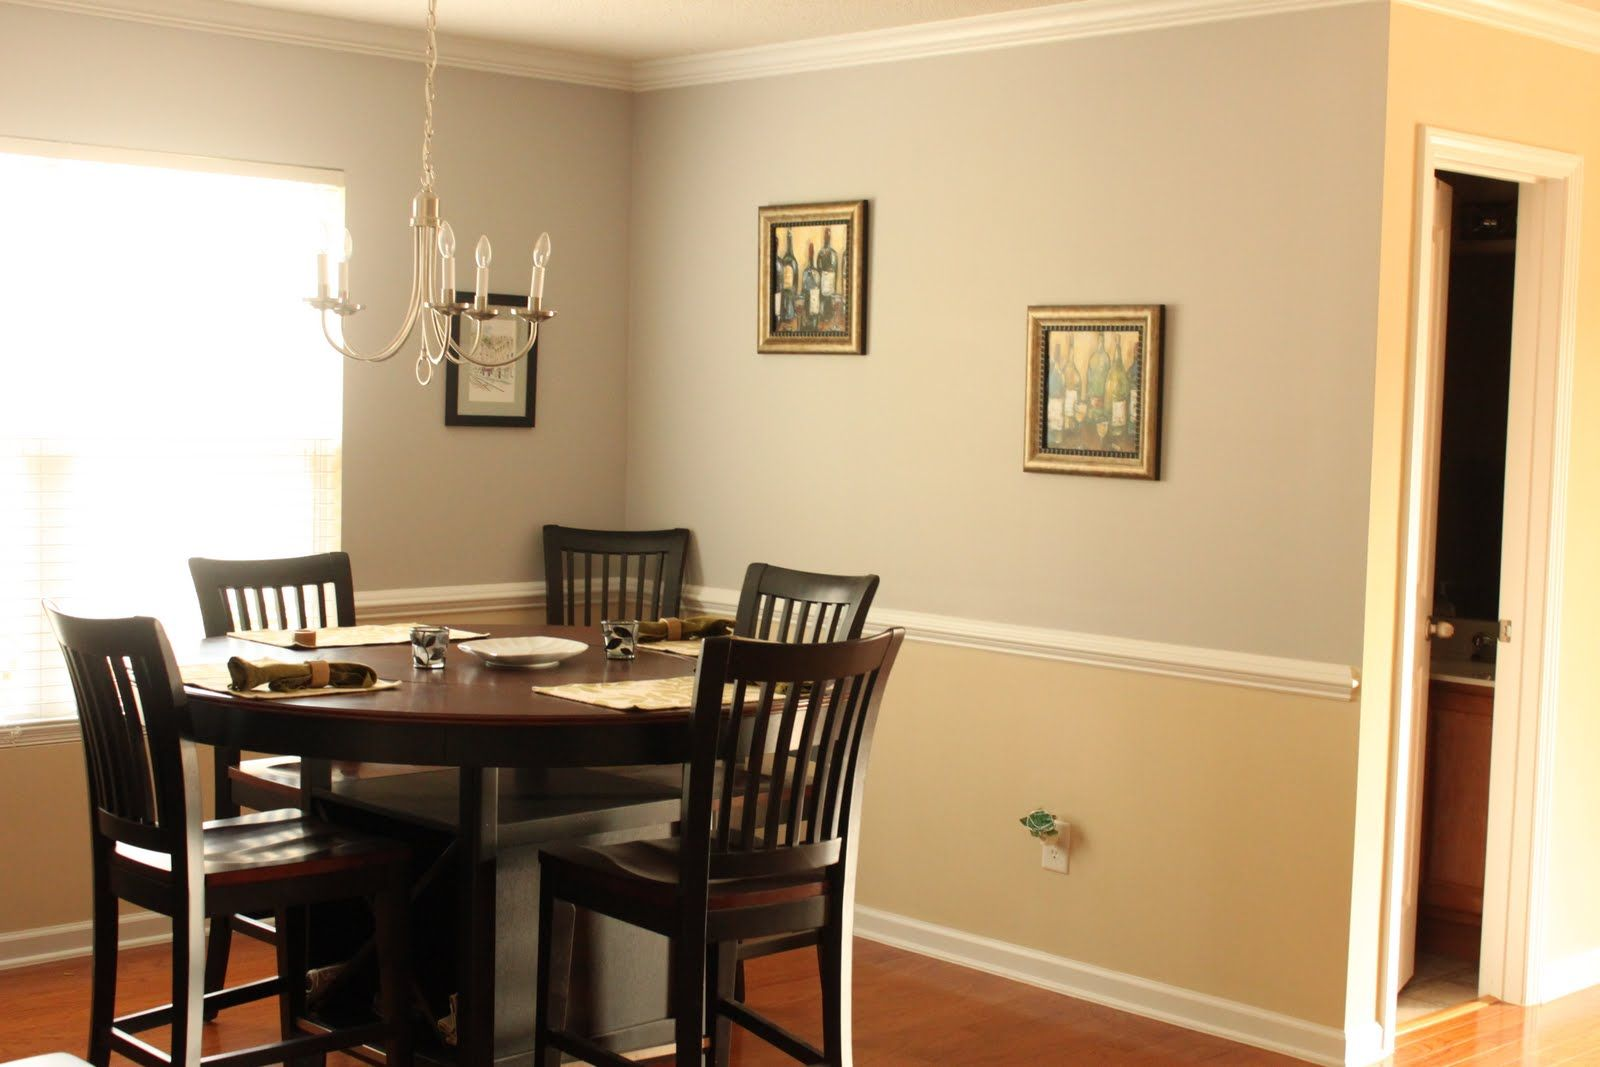 Gray and beige scheme best color to paint a interior room for dining room decorating with simple Paint wall colours